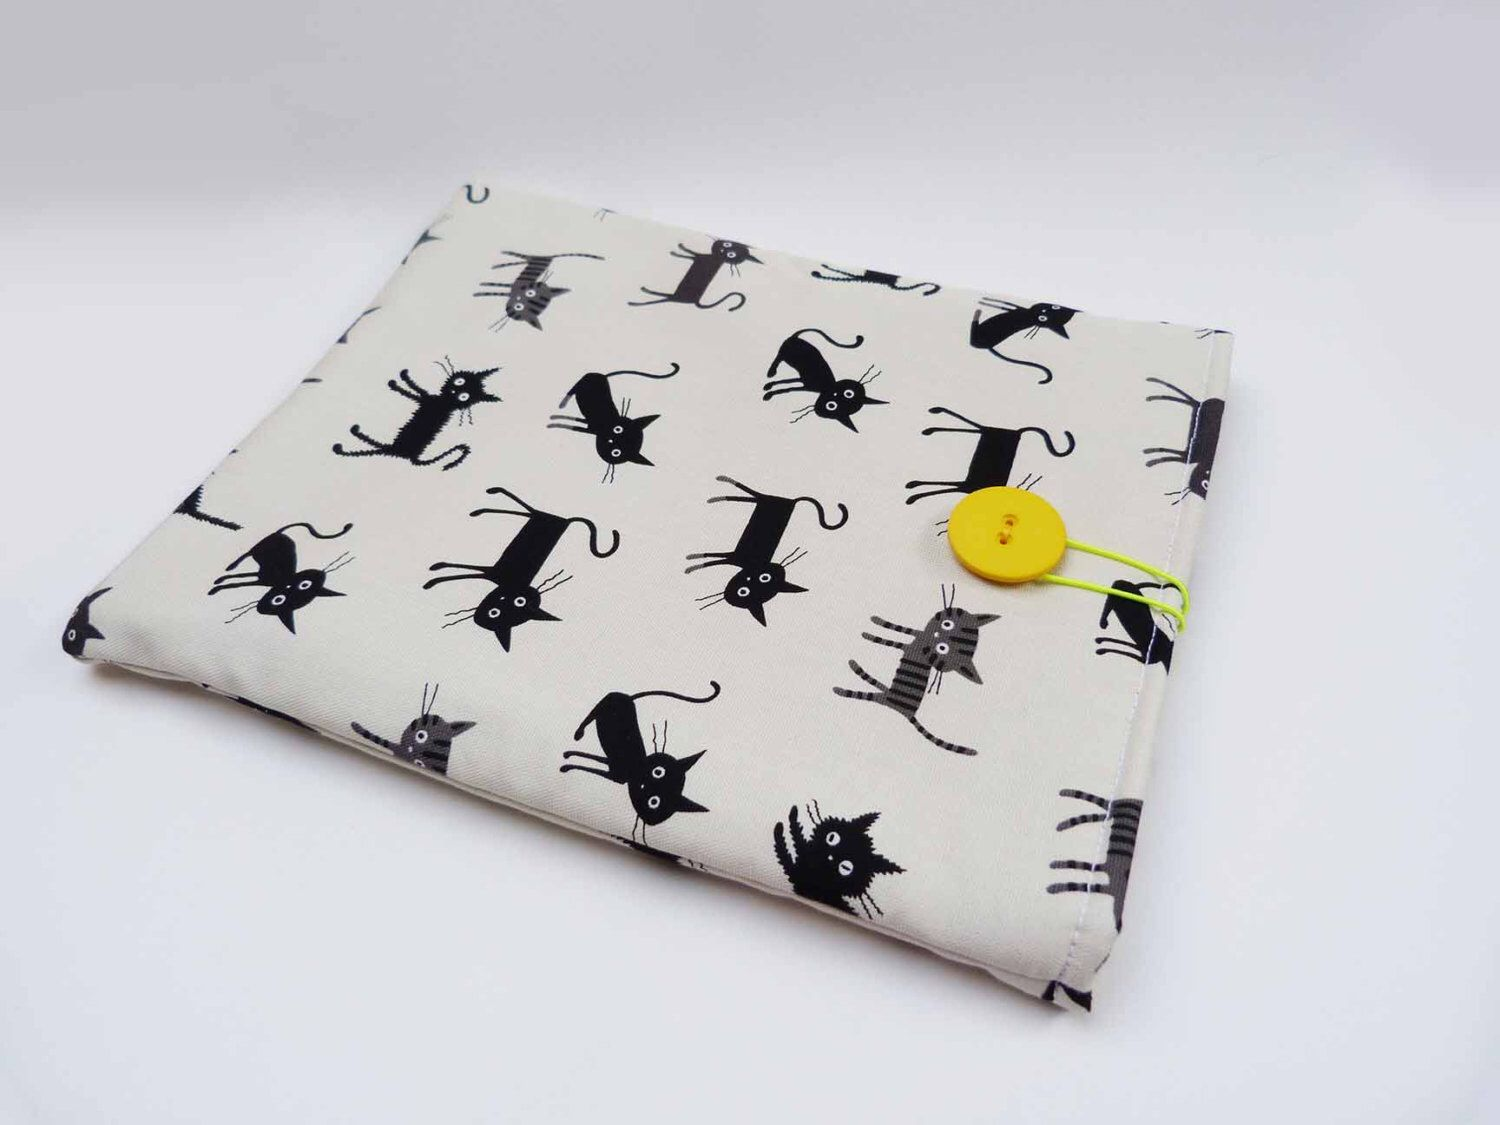 Black and white cat fabric iPad sleeve by cheekyleopard on Etsy https://www.etsy.com/listing/212556498/black-and-white-cat-fabric-ipad-sleeve